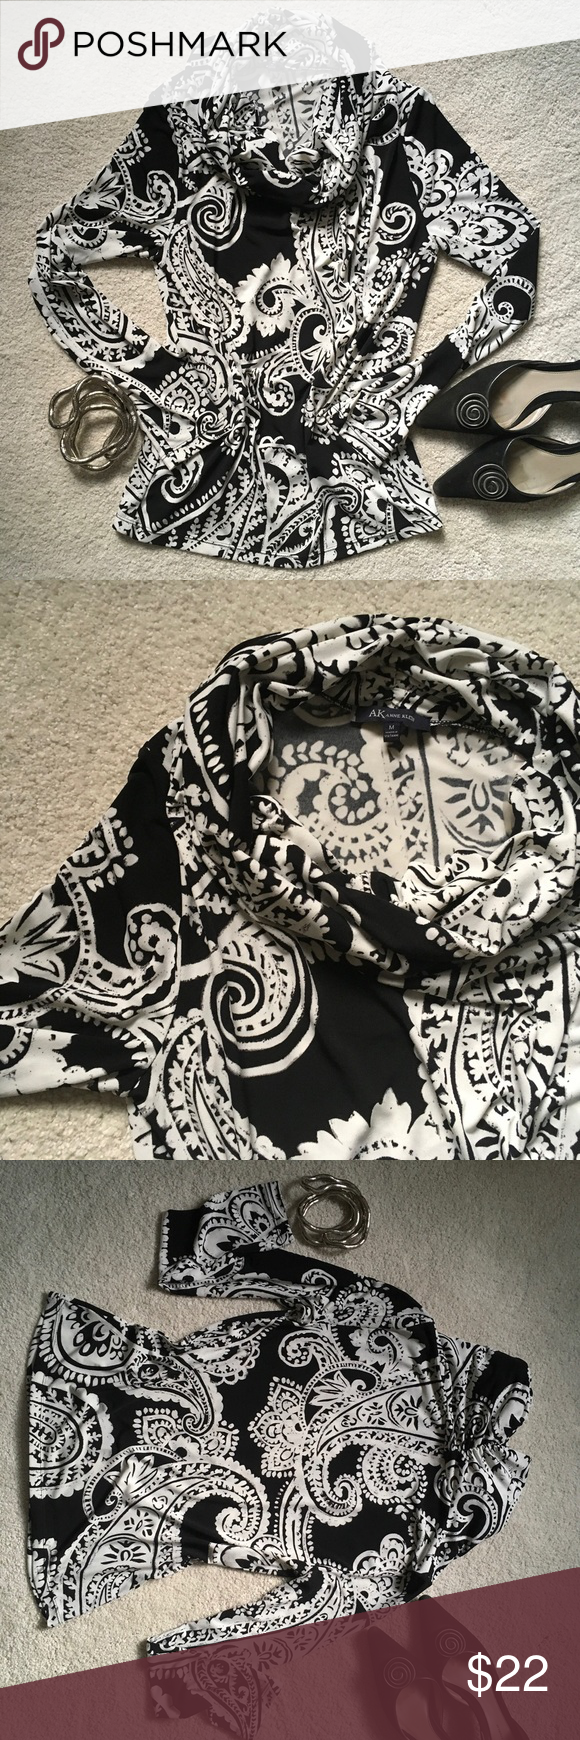 Anne Klein Black & White Top Versatile top. Stretchy with very full, cowl neck and long sleeves. Standout black and white paisley print. Mid weight polyester/spandex blend that super-comfortable. In mint condition. Anne Klein Tops Tunics